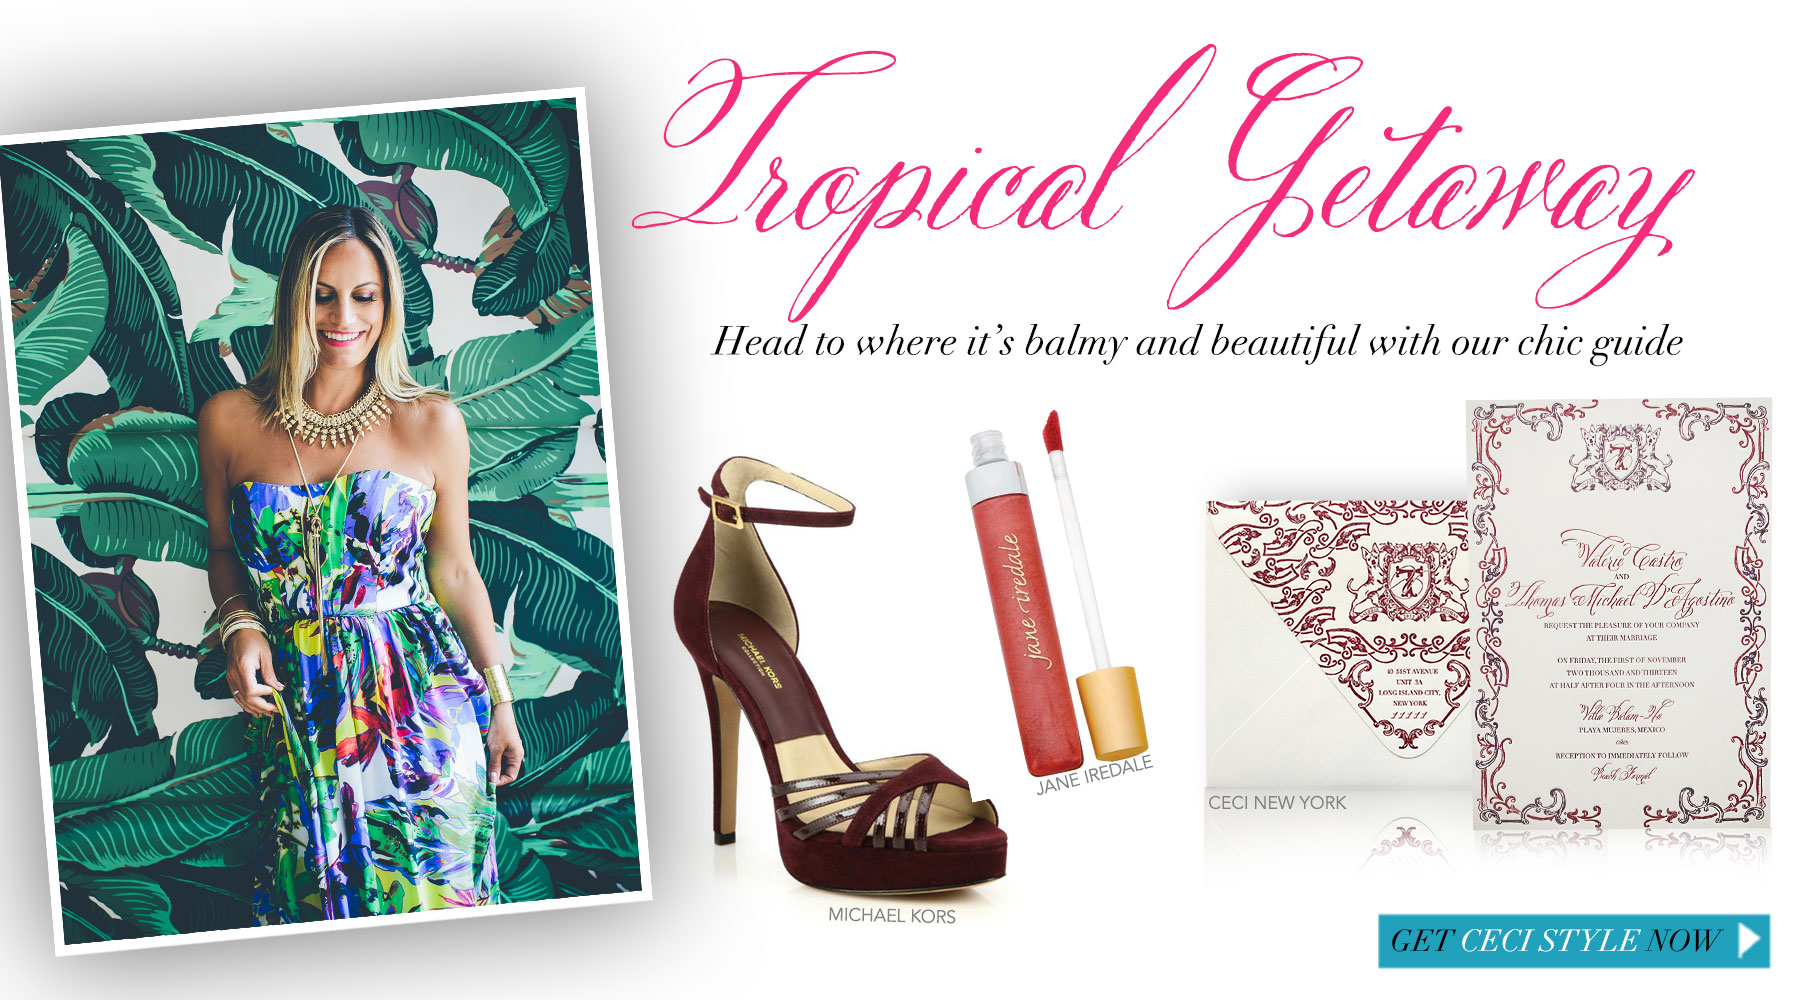 Tropical Getaway -  Head to where it's balmy and beautiful with our chic guide